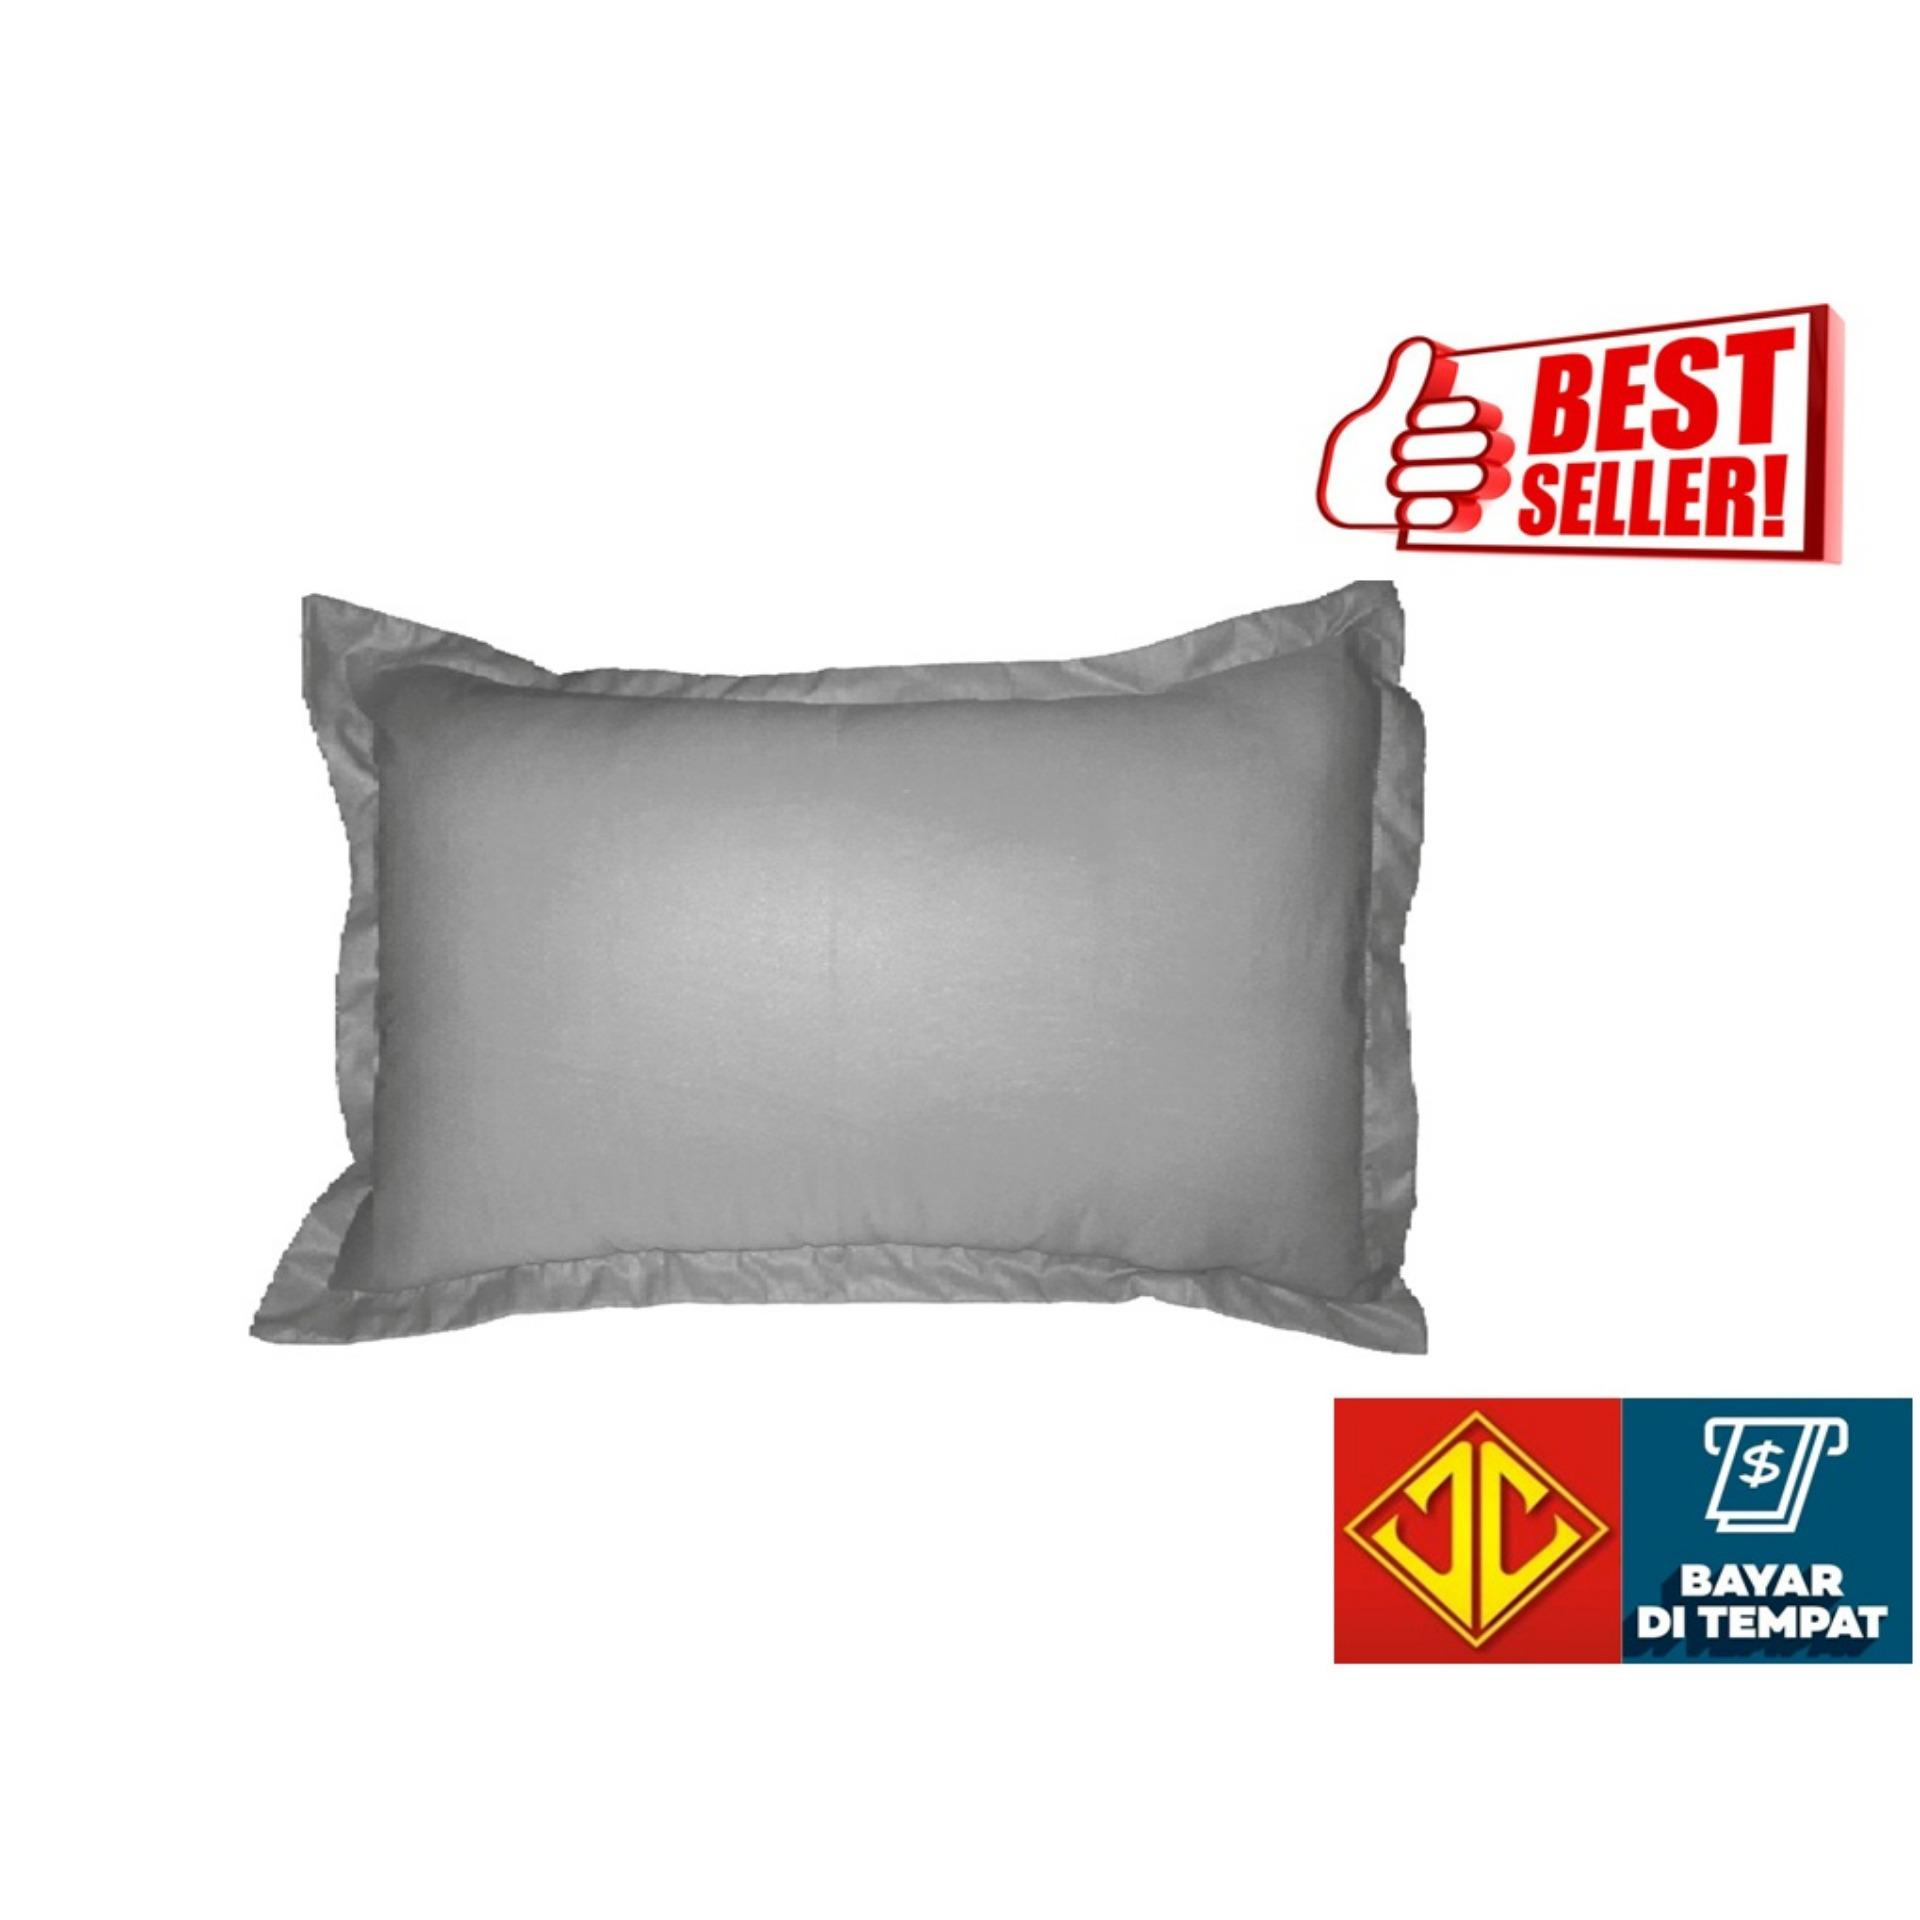 Sarung Bantal Waterproof Anti Air Ompol | Sarban Waterproof | Sarban Anti Air Polos Aneka Warna